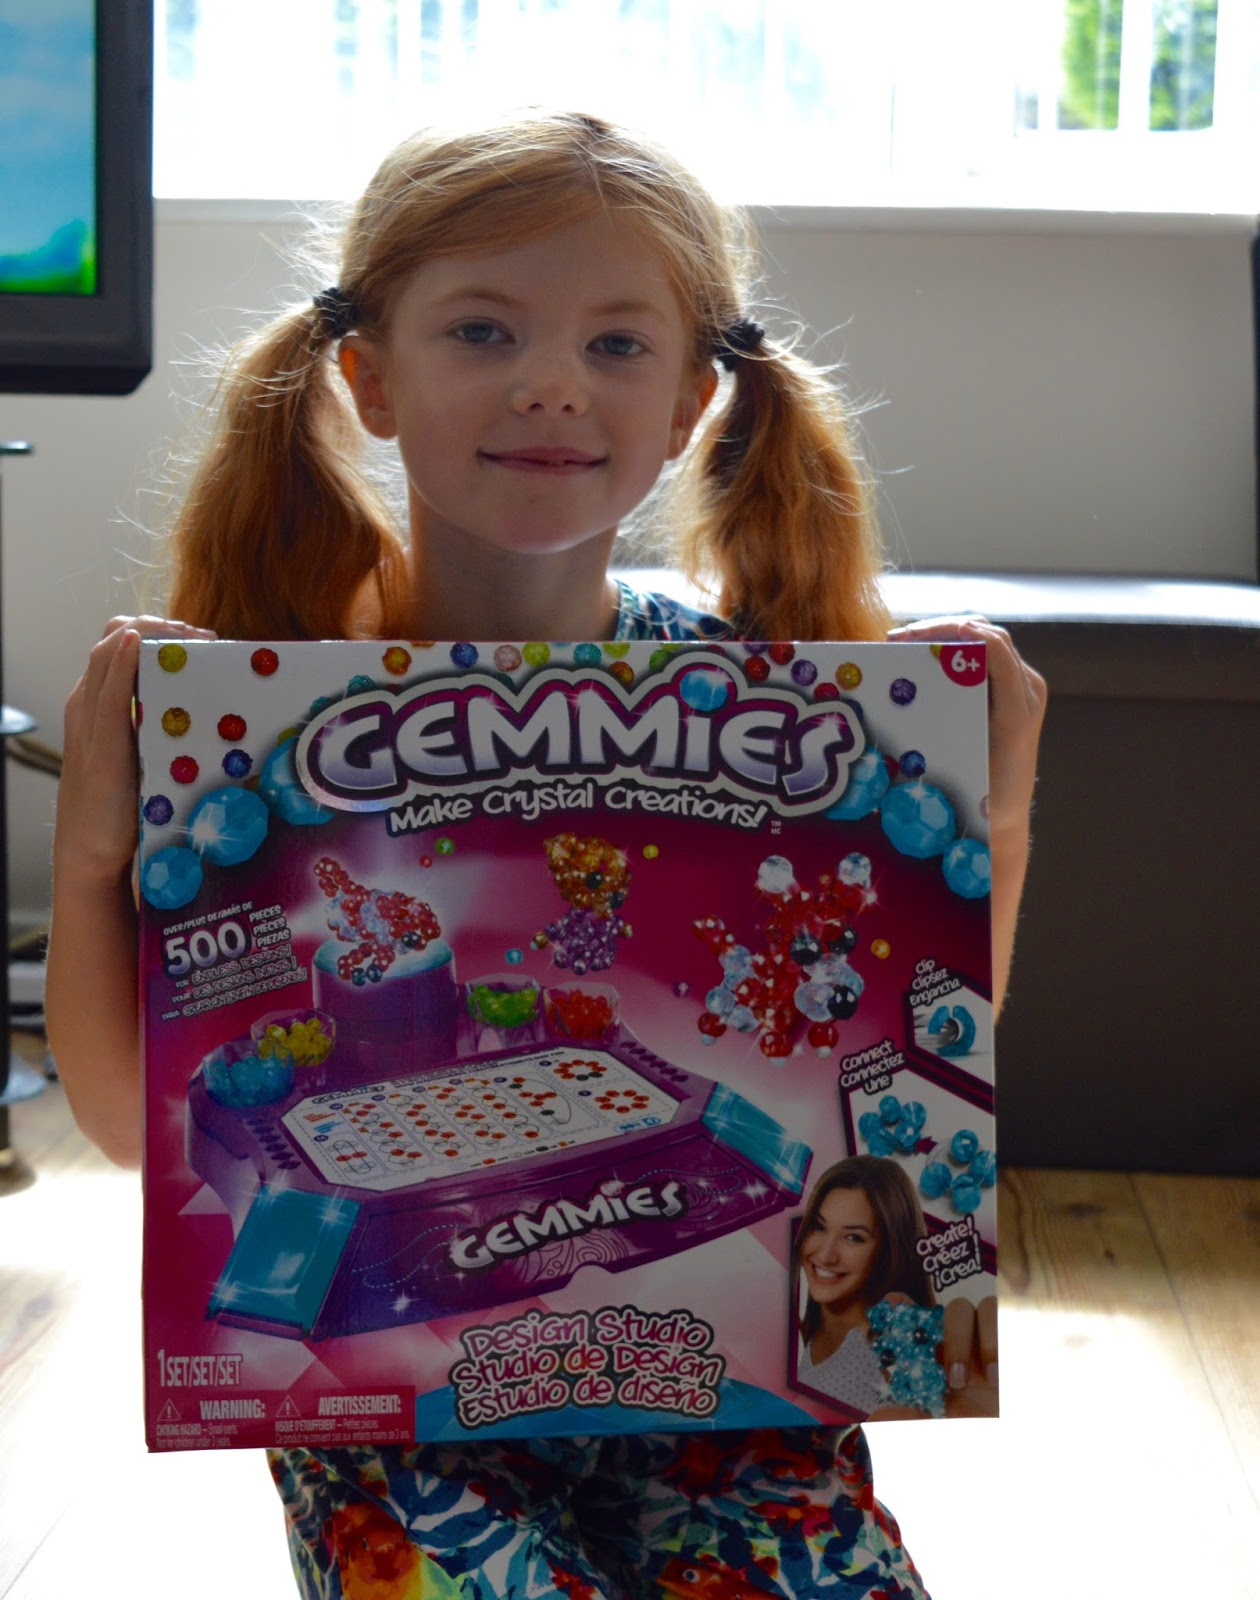 Gemmies Design Studio - A Review